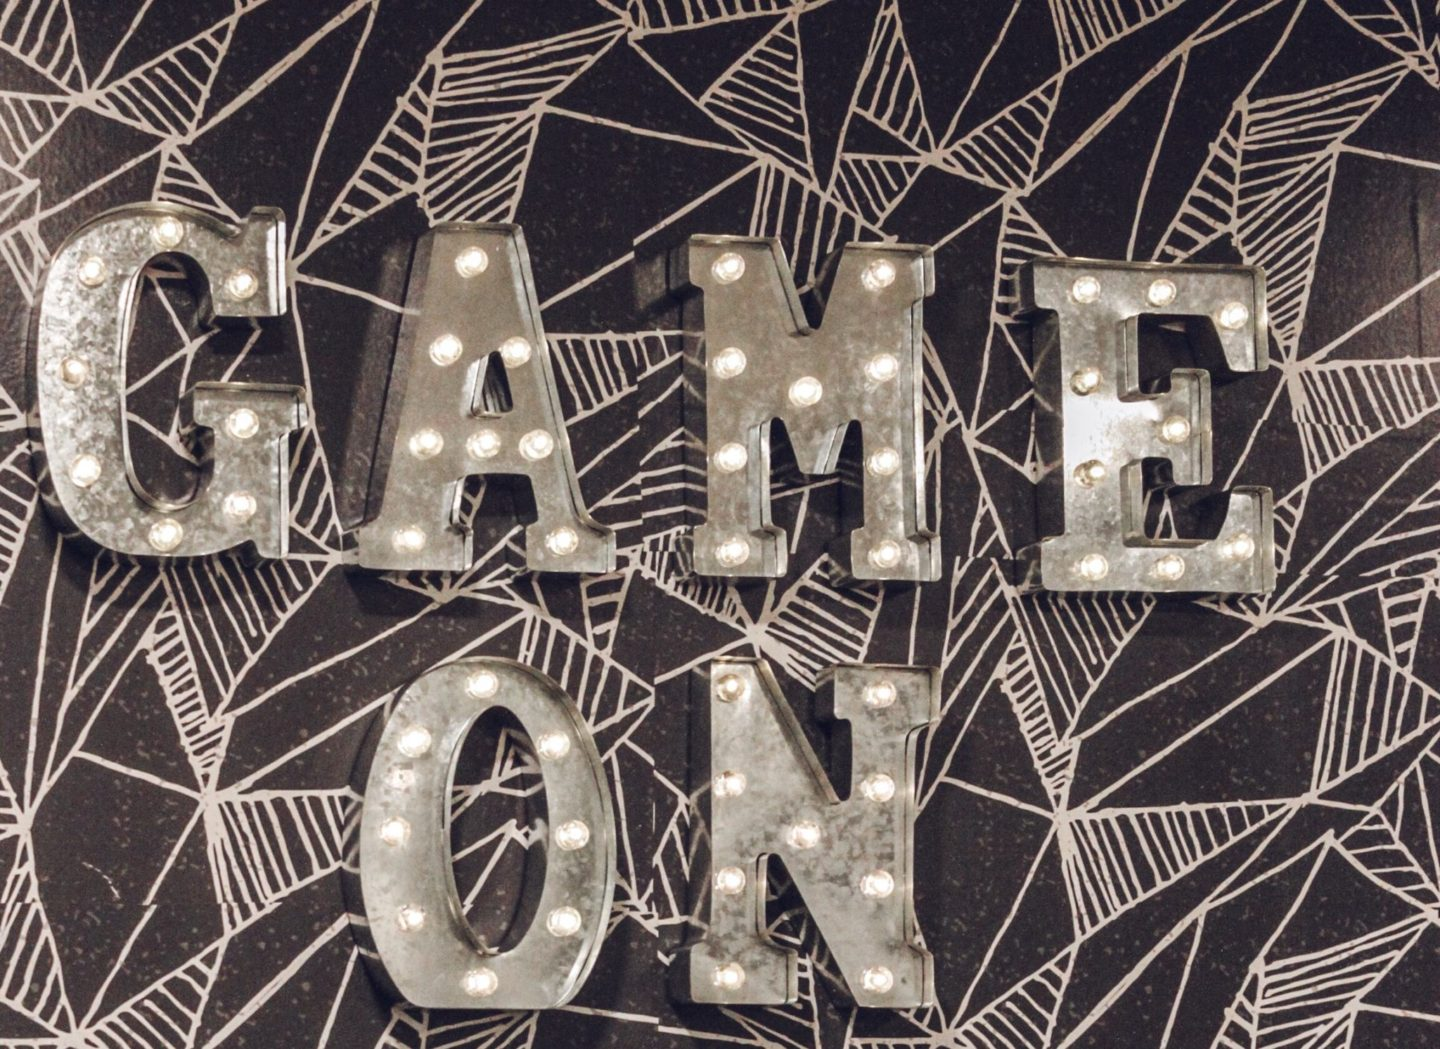 Marque Lights, Game Room Makeover with Wallpaper